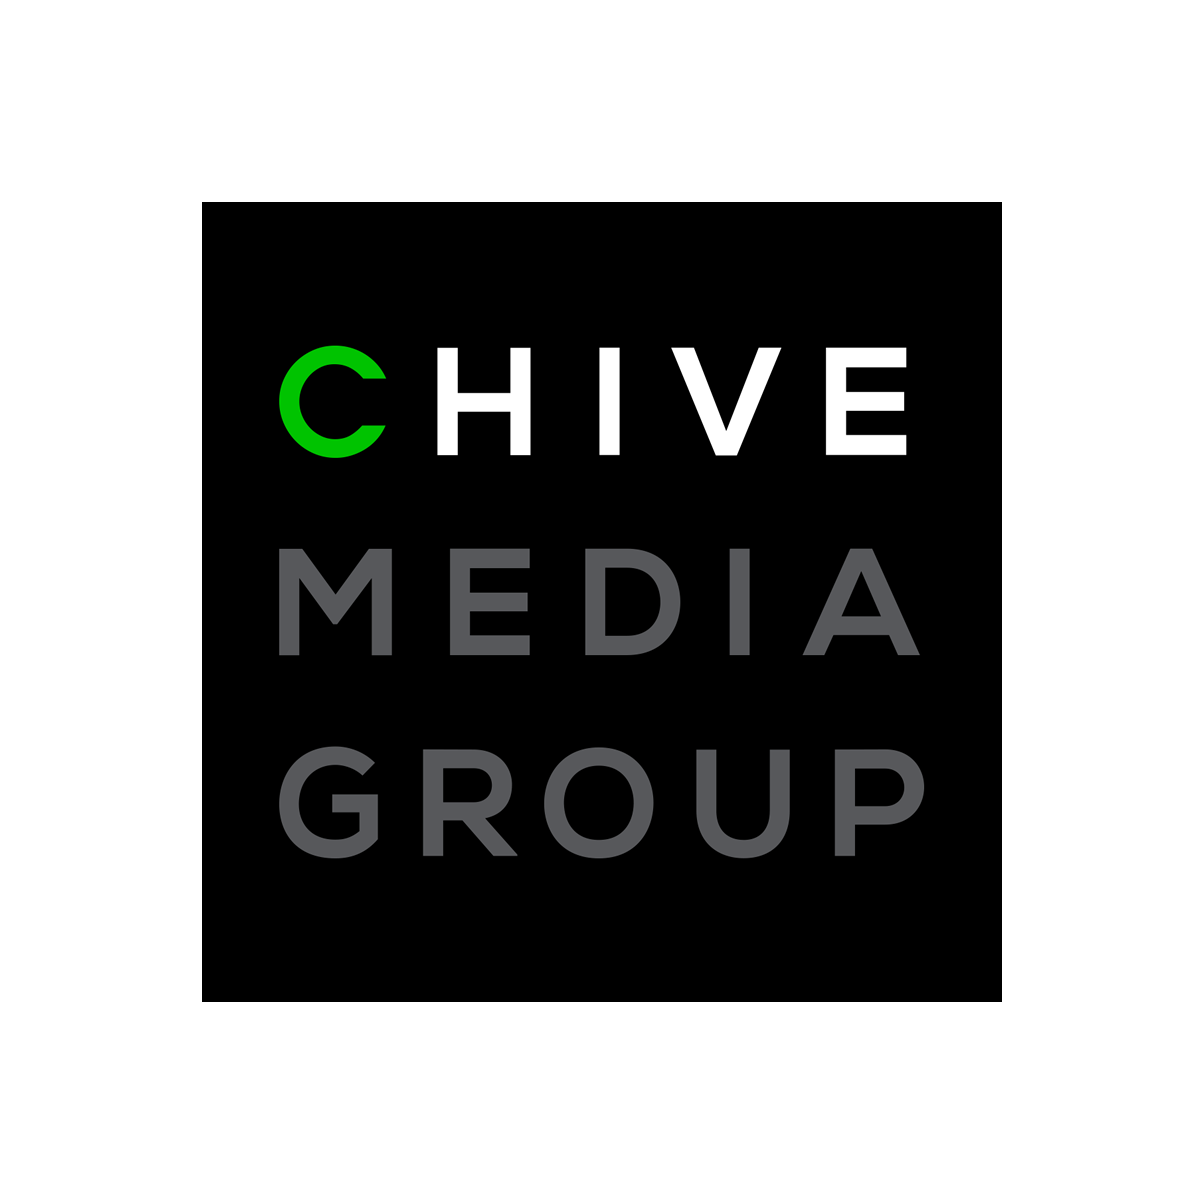 CHIVEMEDIAGROUP